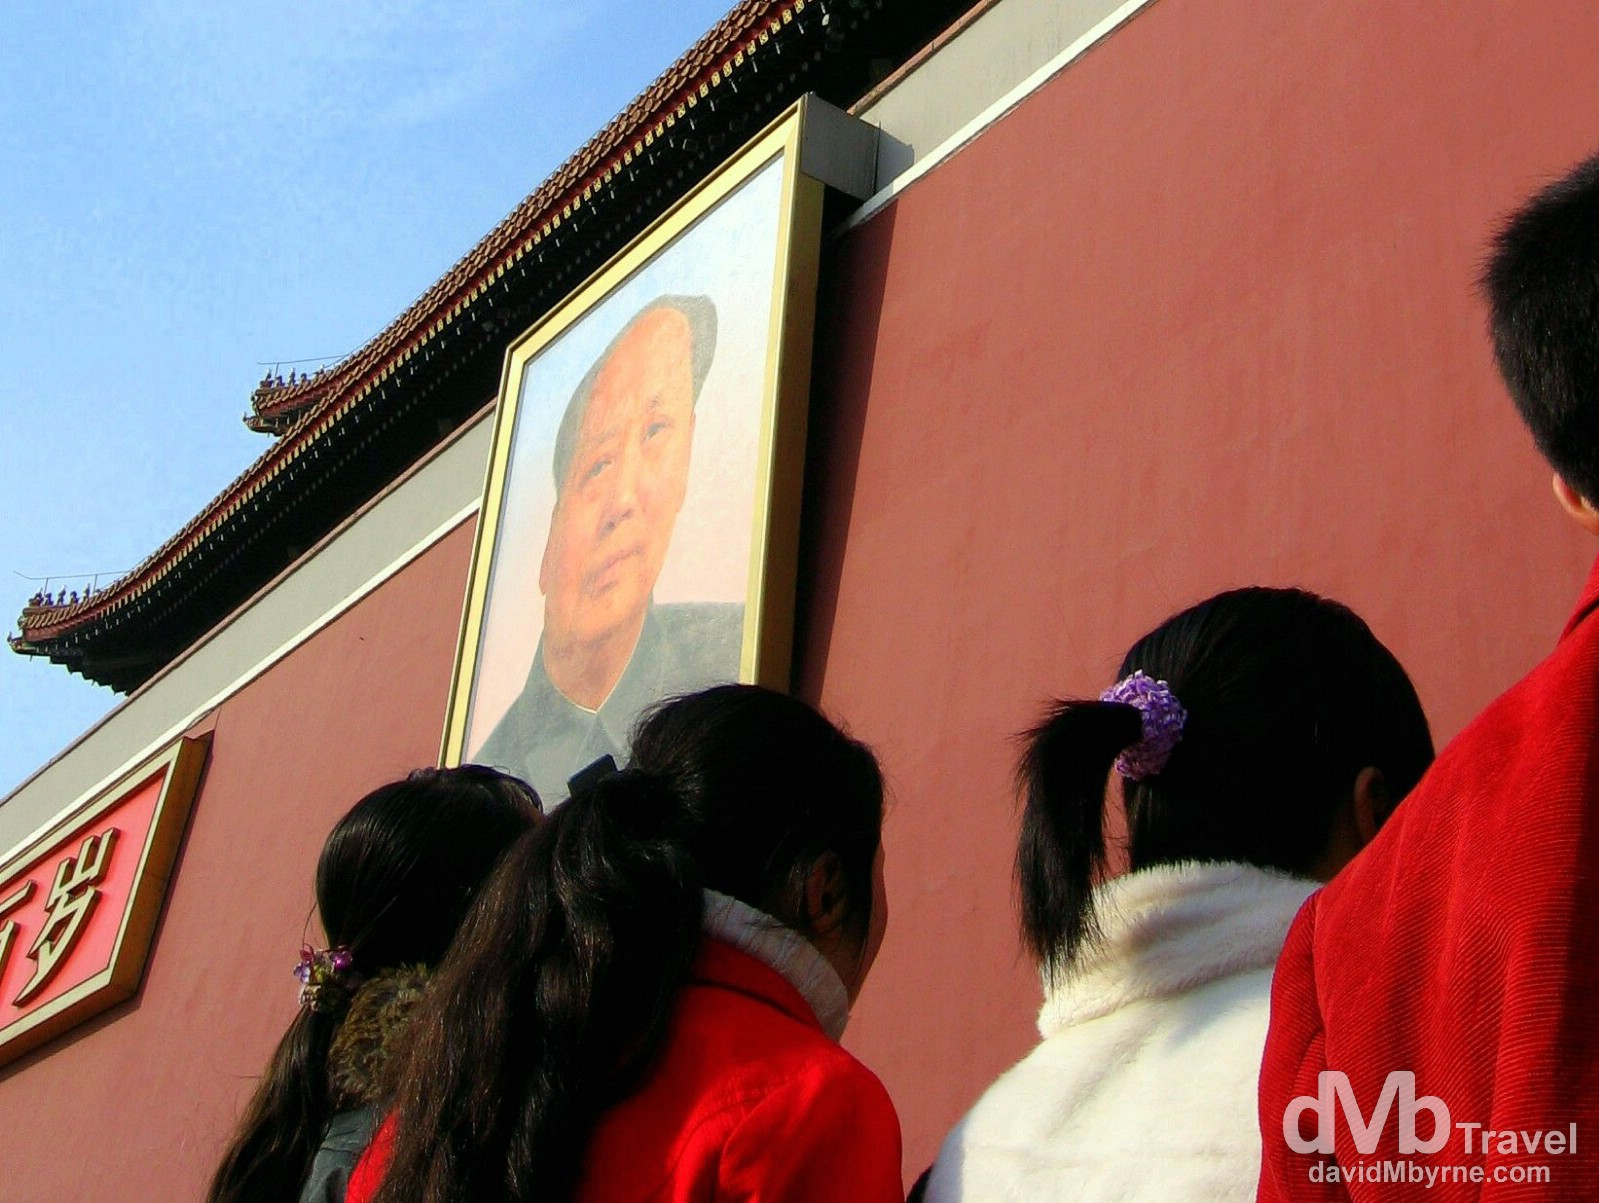 Gate of Heavenly Peace, the entrance to the Forbidden City in Tiananmen Square, Beijing. February 15th, 2008.